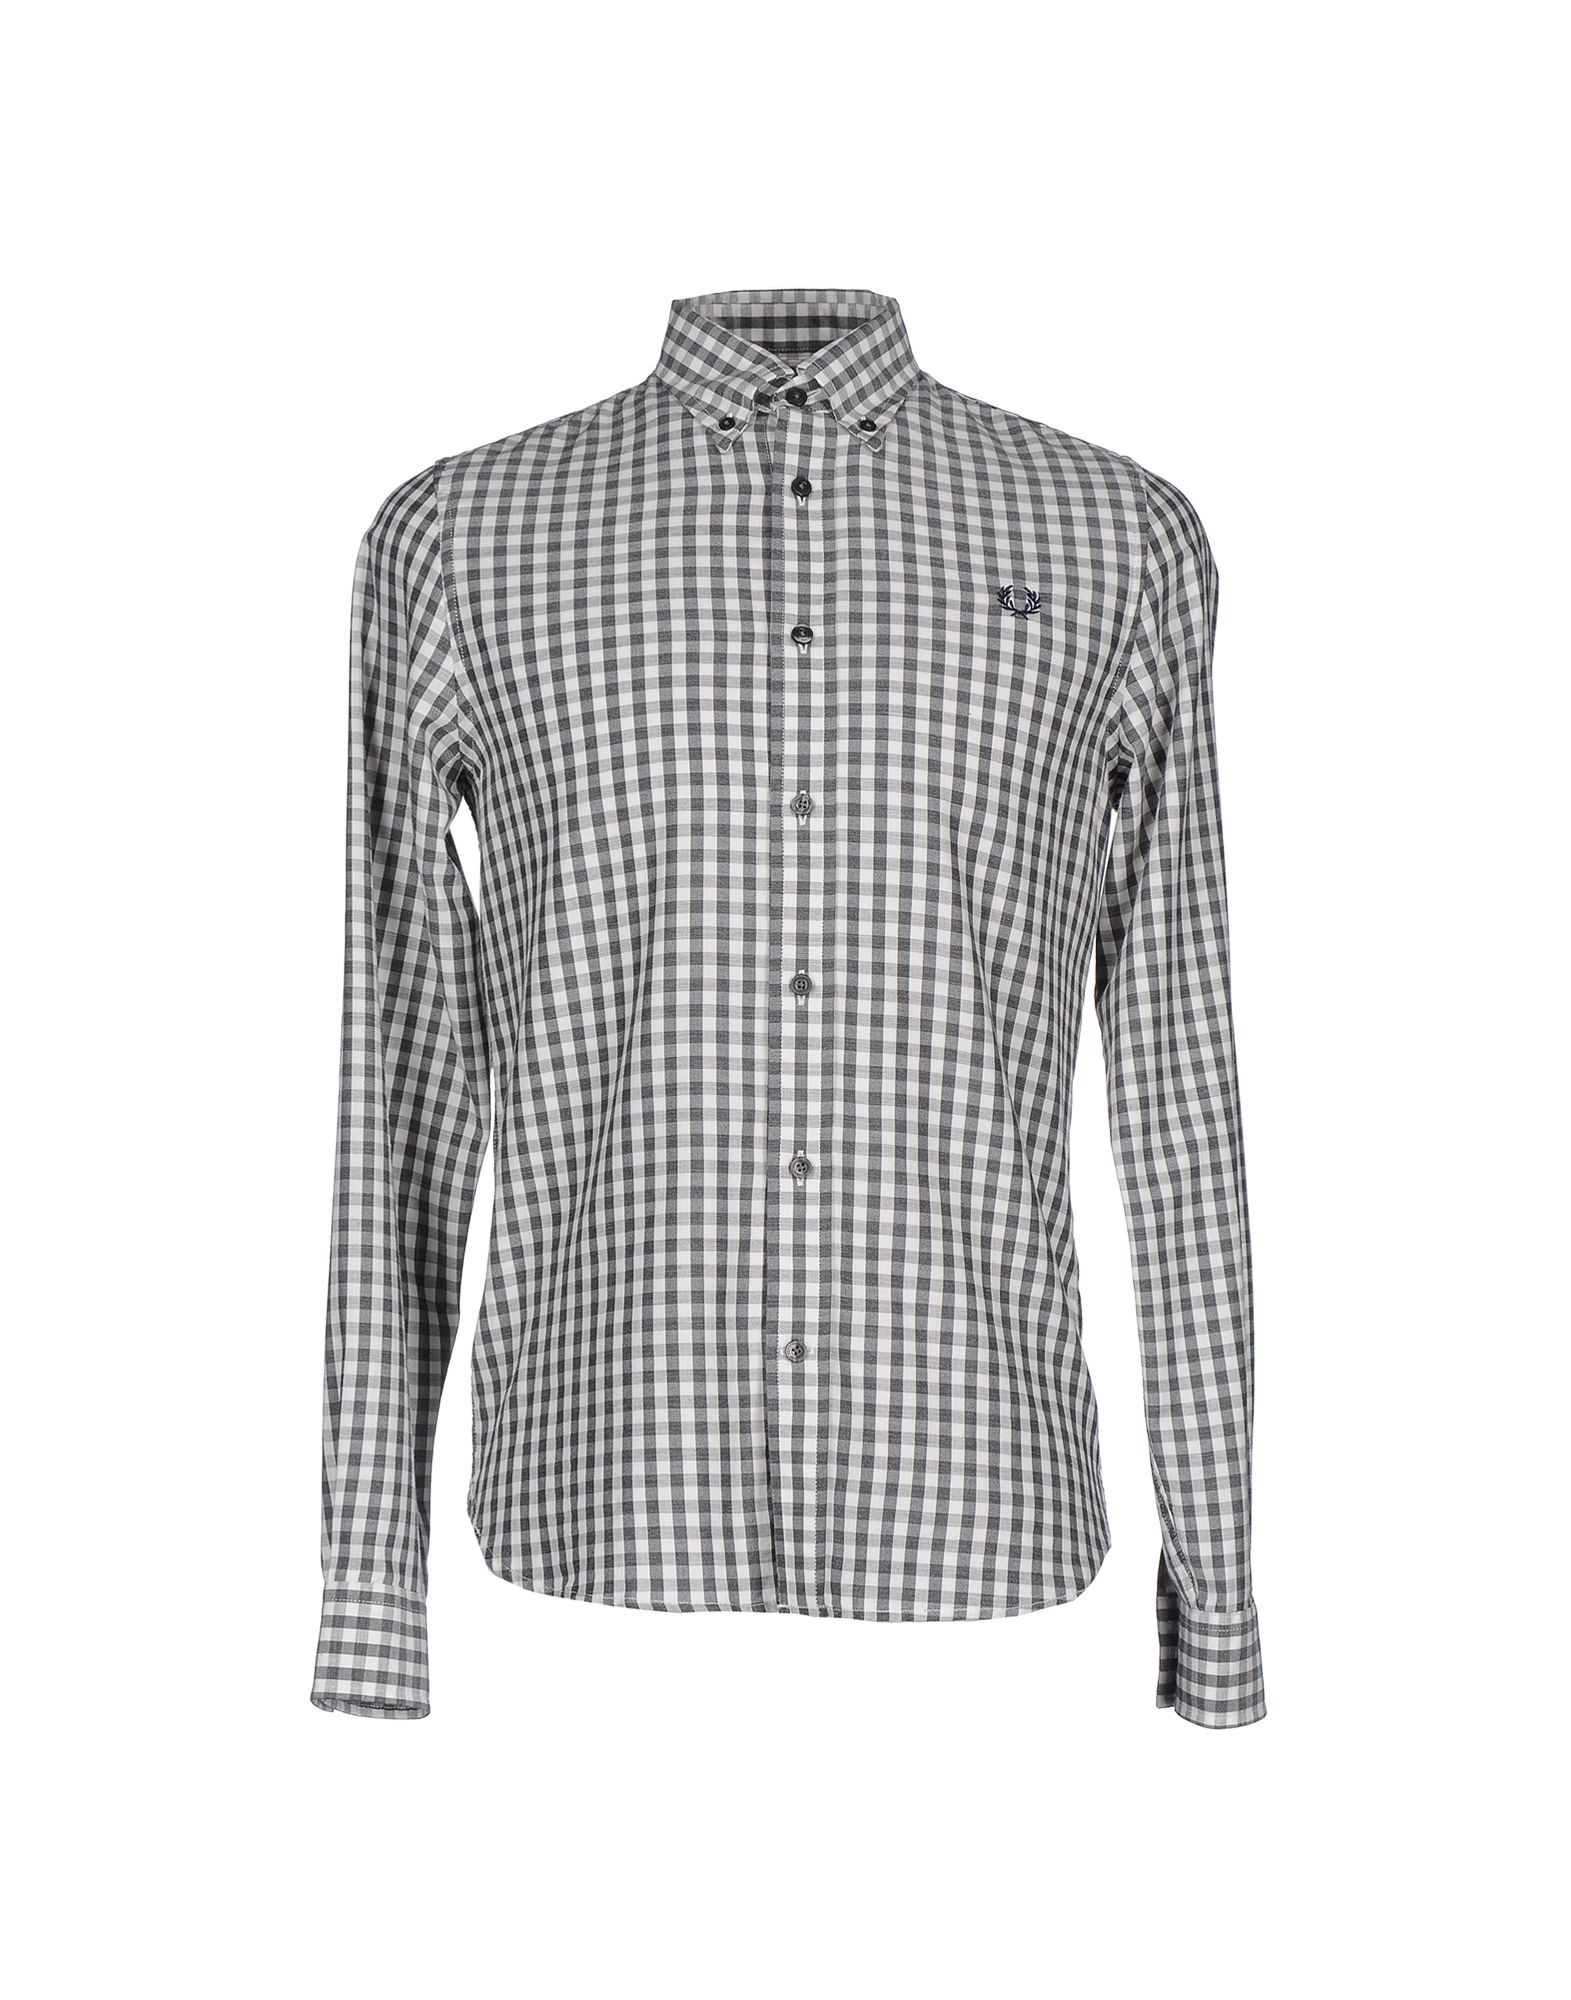 FRED PERRY Pубашка рубашка в клетку fred perry gingham shirt long sleeve black white